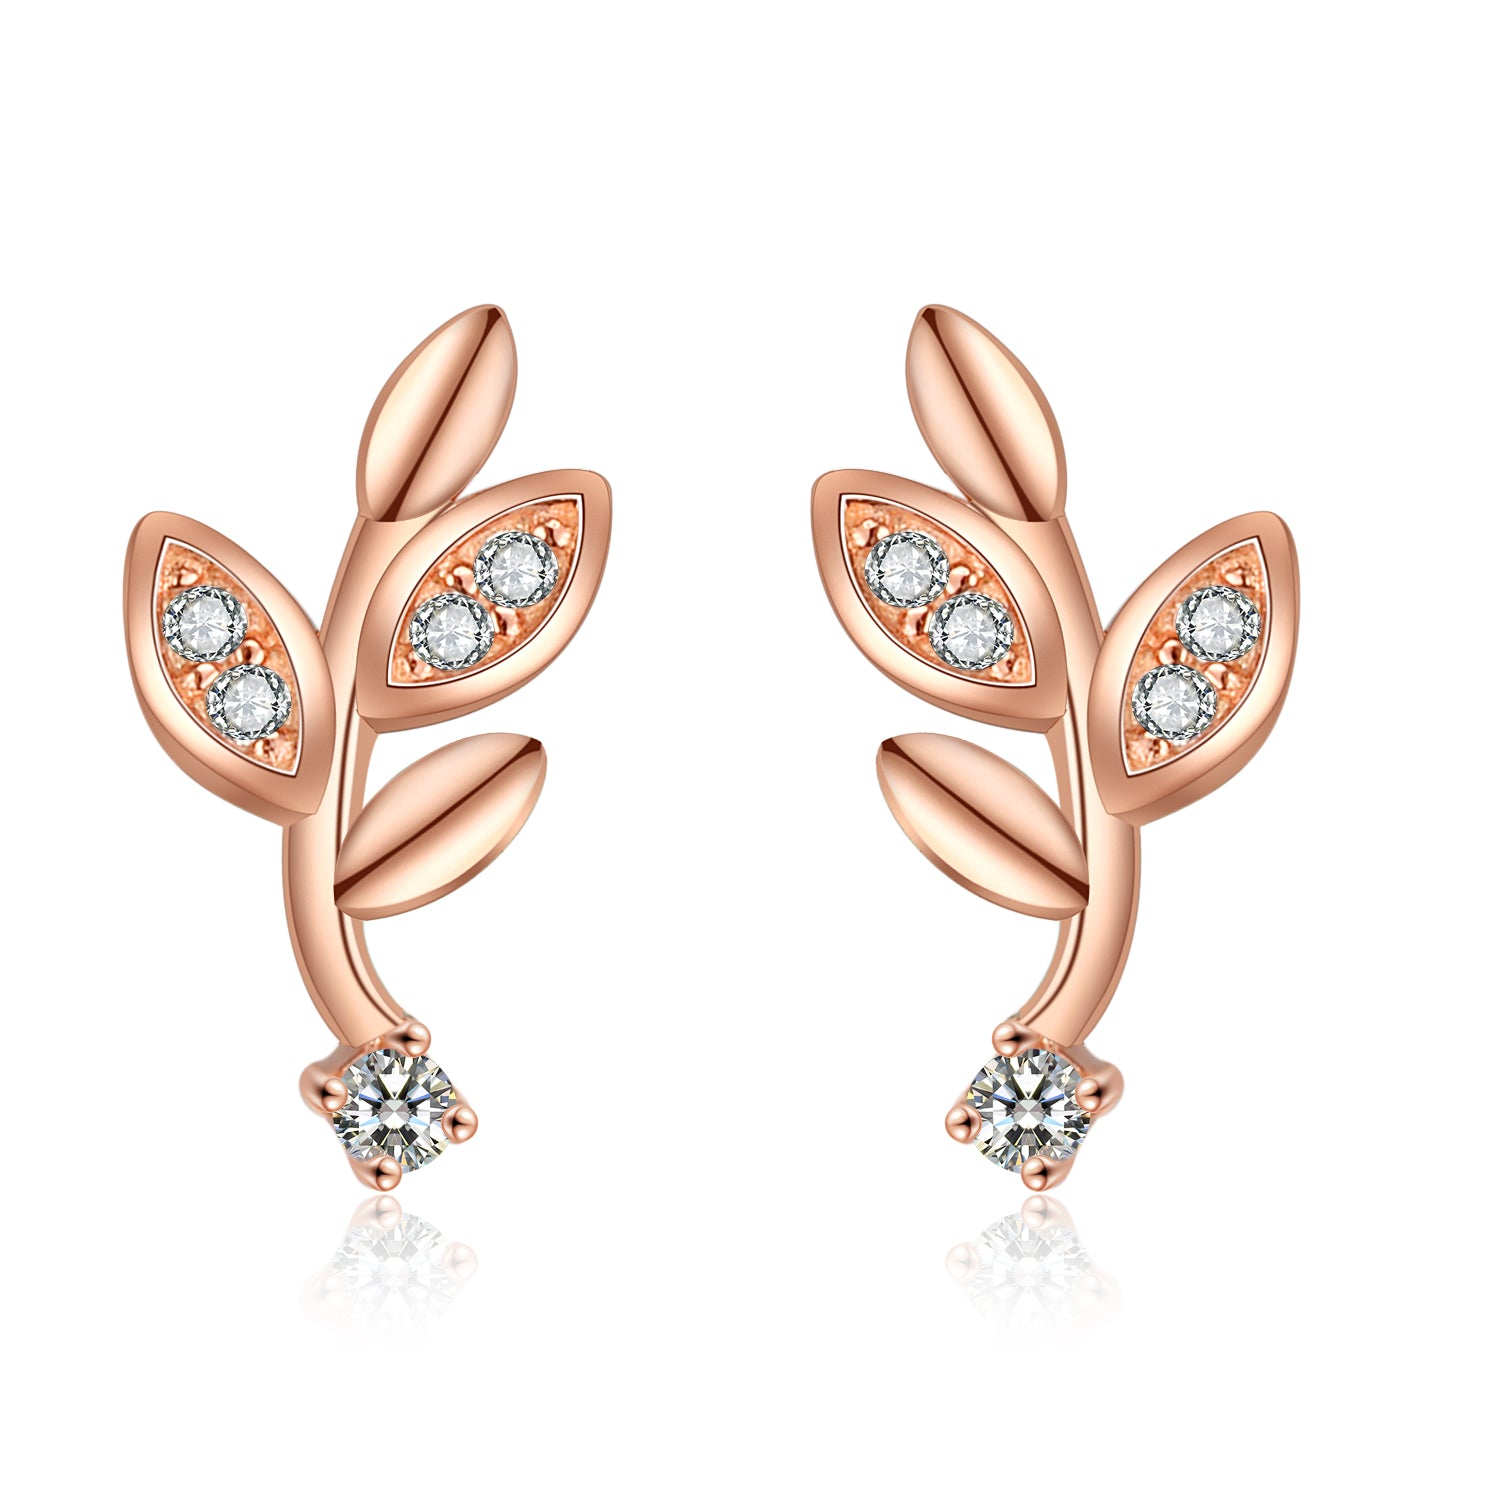 Leaves Custom Earrings Fashion Jewelry Cubic Zirconia Leaves Shape Stud Earrings